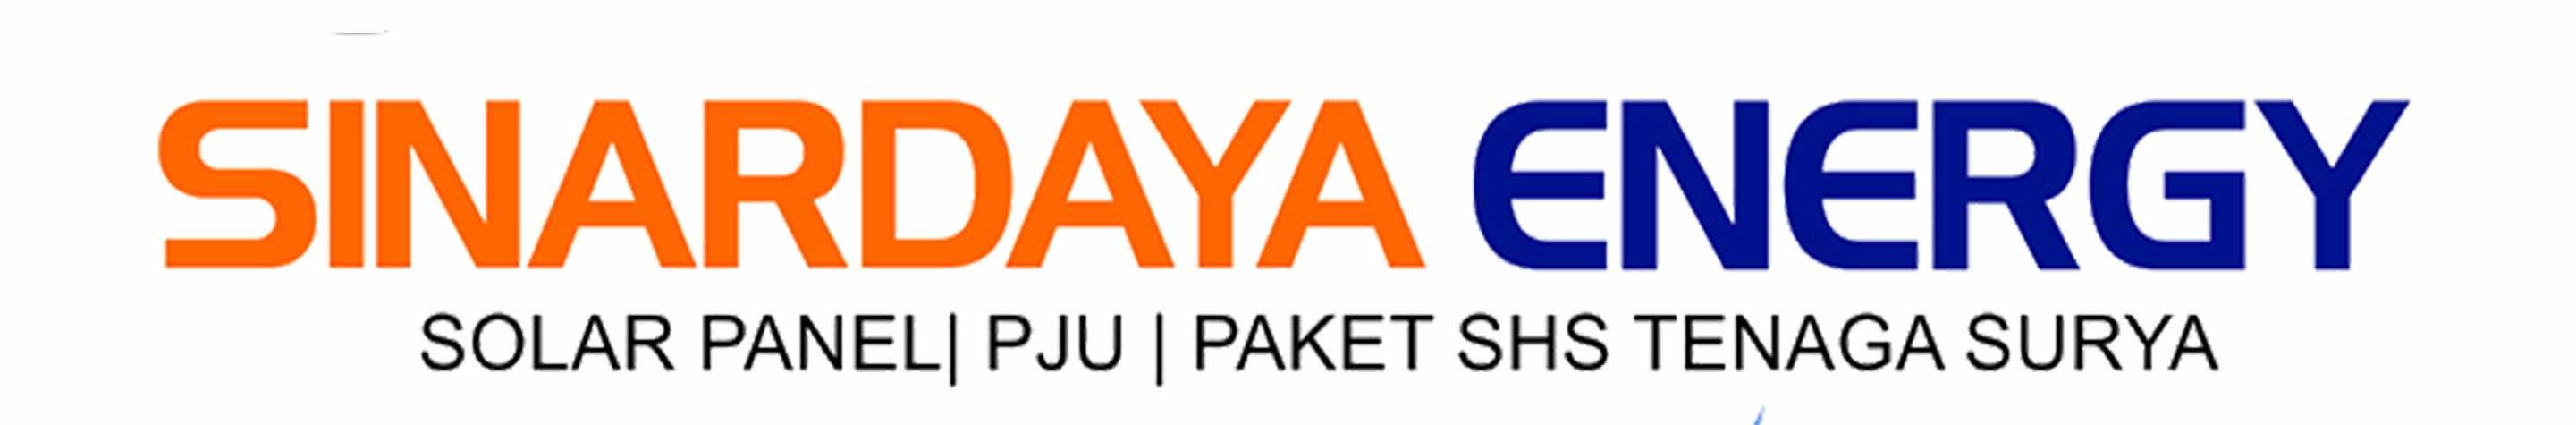 SOLAR PANEL SURYA, HARGA SOLAR CELL, JUAL PANEL SURYA